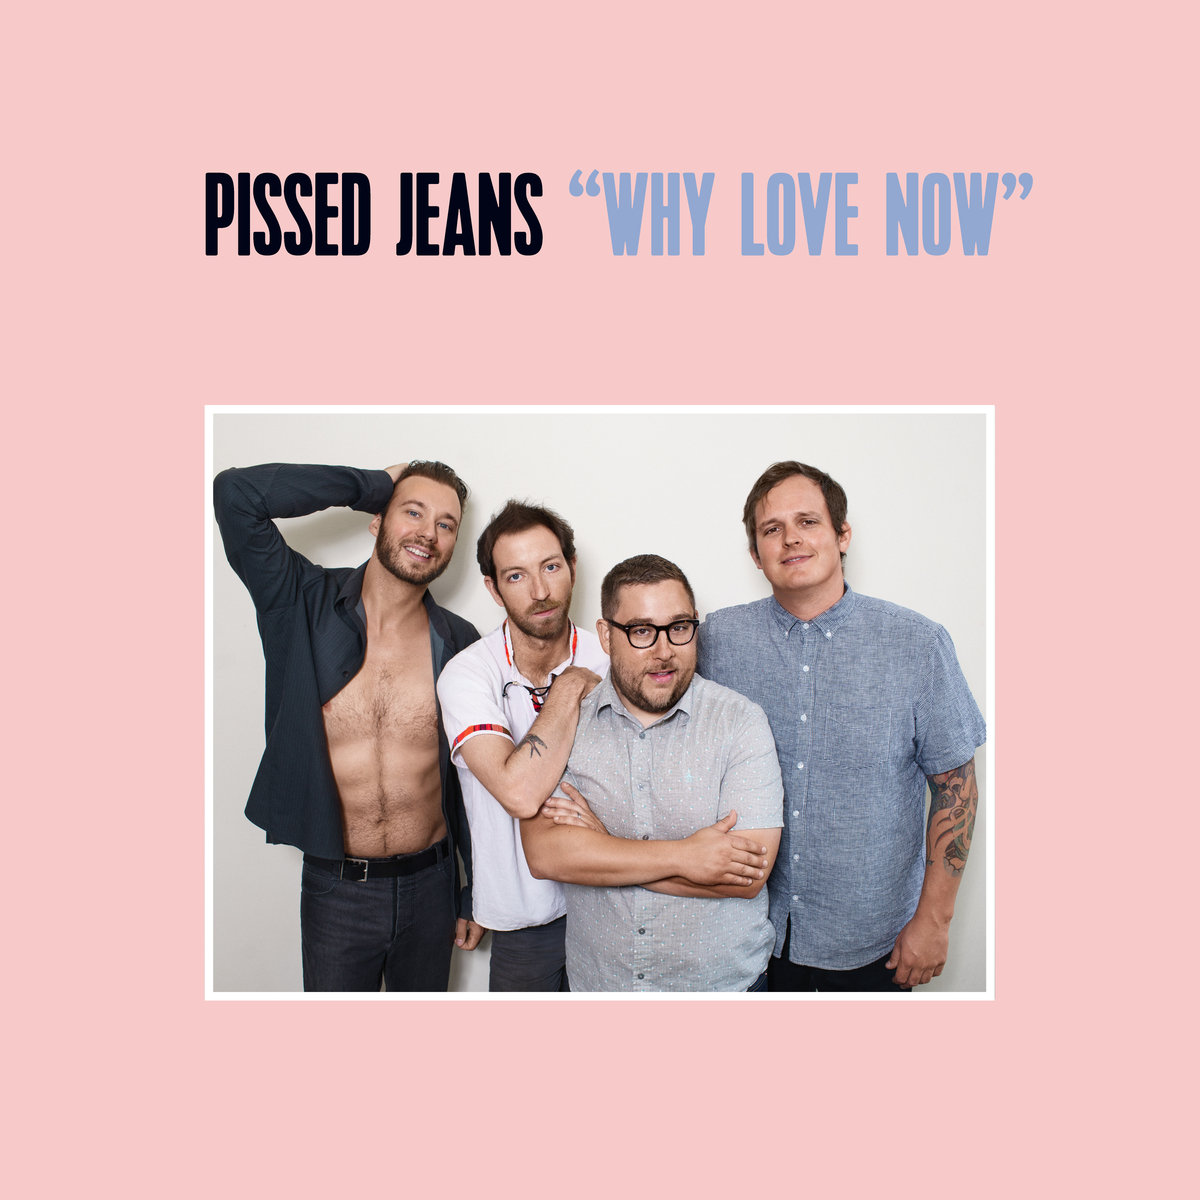 'Why Love Now' by Pissed Jeans, album review by Josh Gabert-Doyon. The album is available February 24 on Sub Pop.